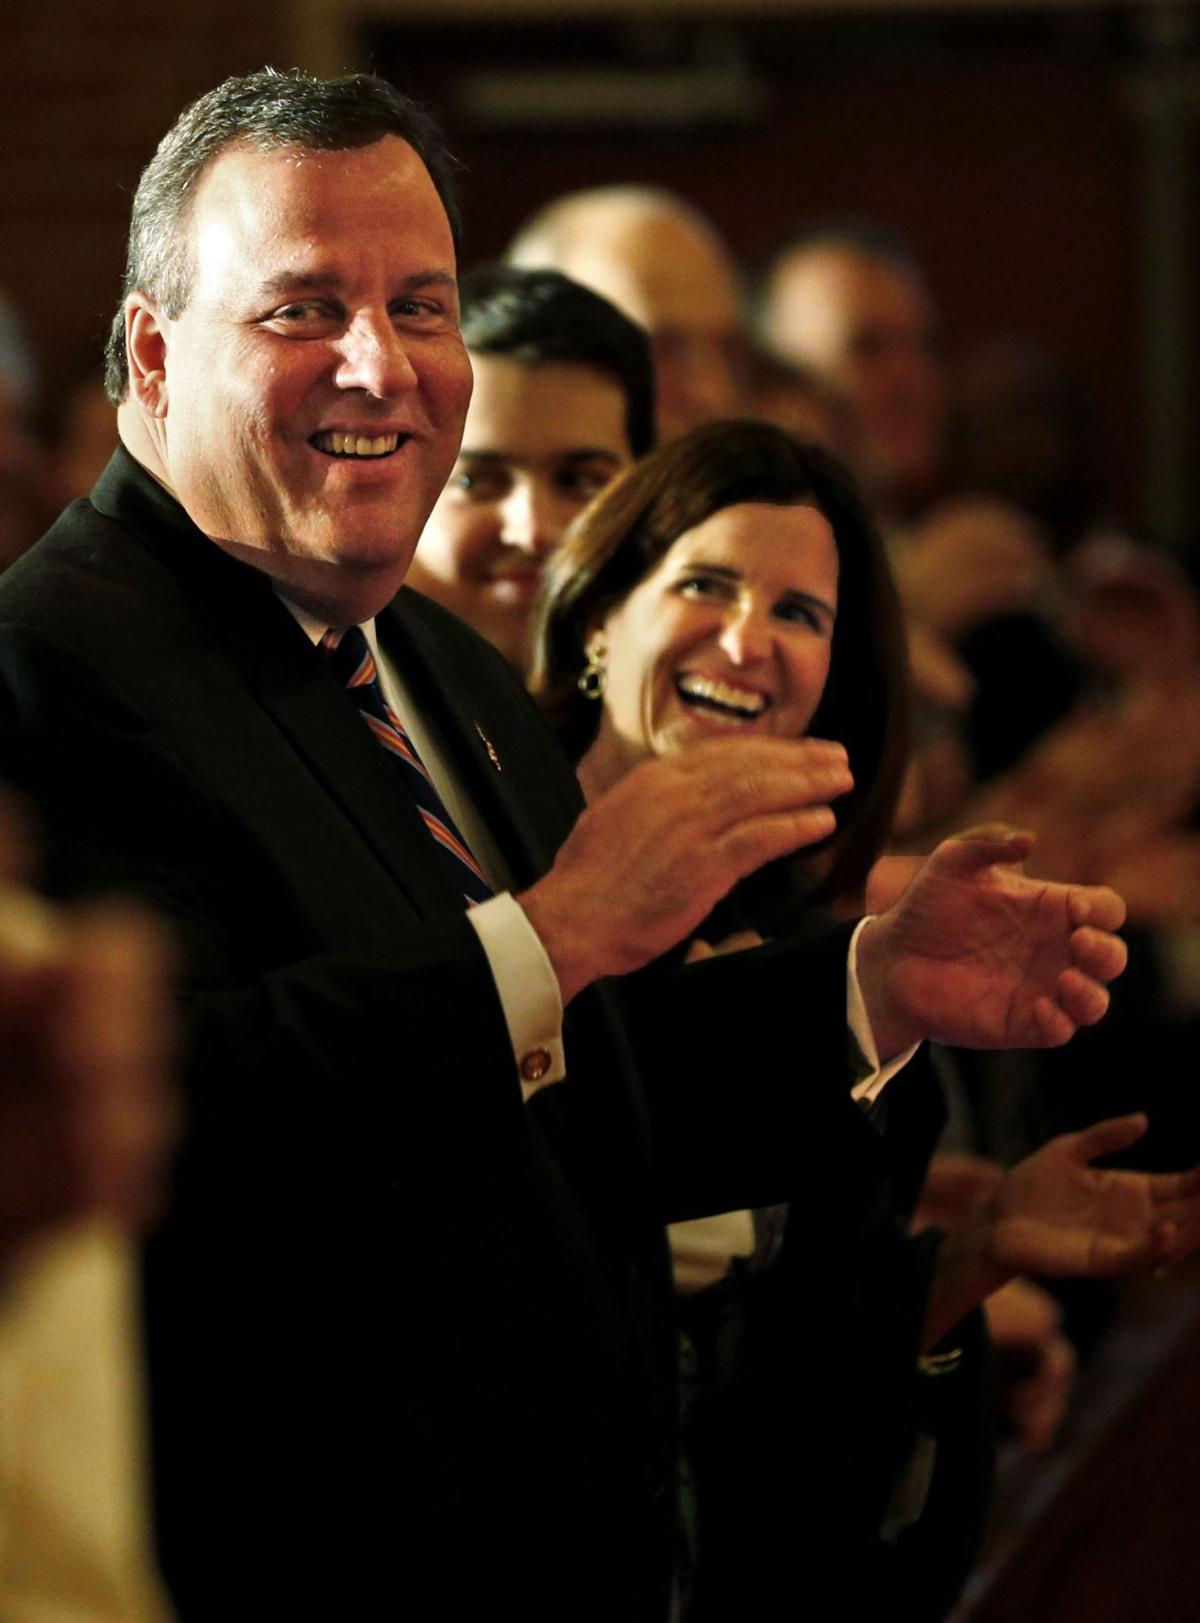 NJ's Chris Christie to attend Haley inauguration